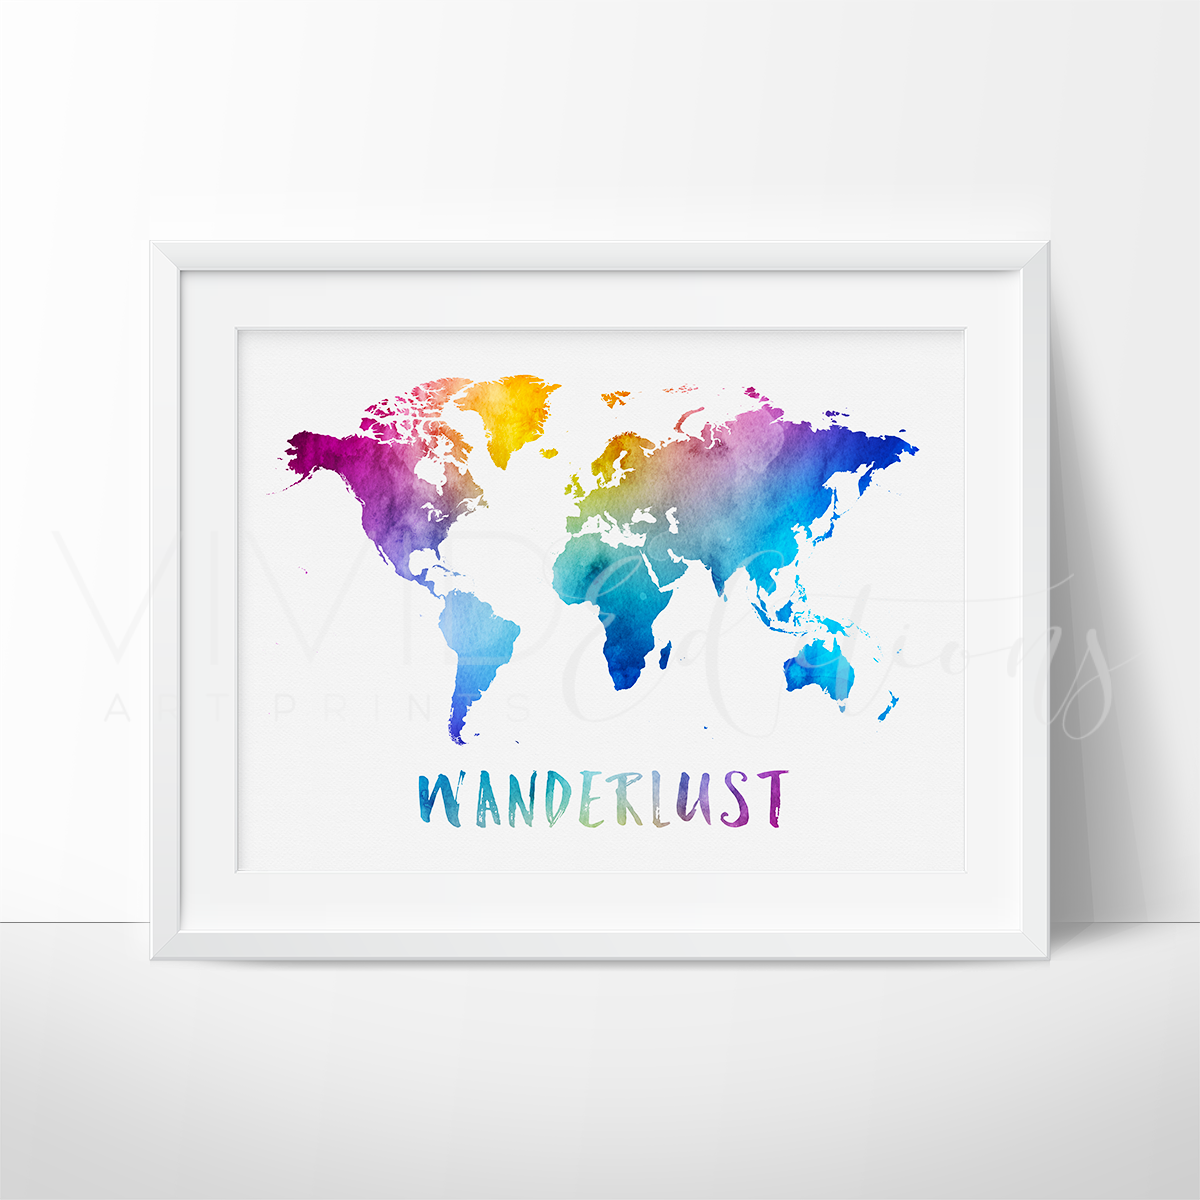 Wanderlust travel quote world map home or nursery wall art decor wanderlust travel quote world map watercolor art print gumiabroncs Choice Image